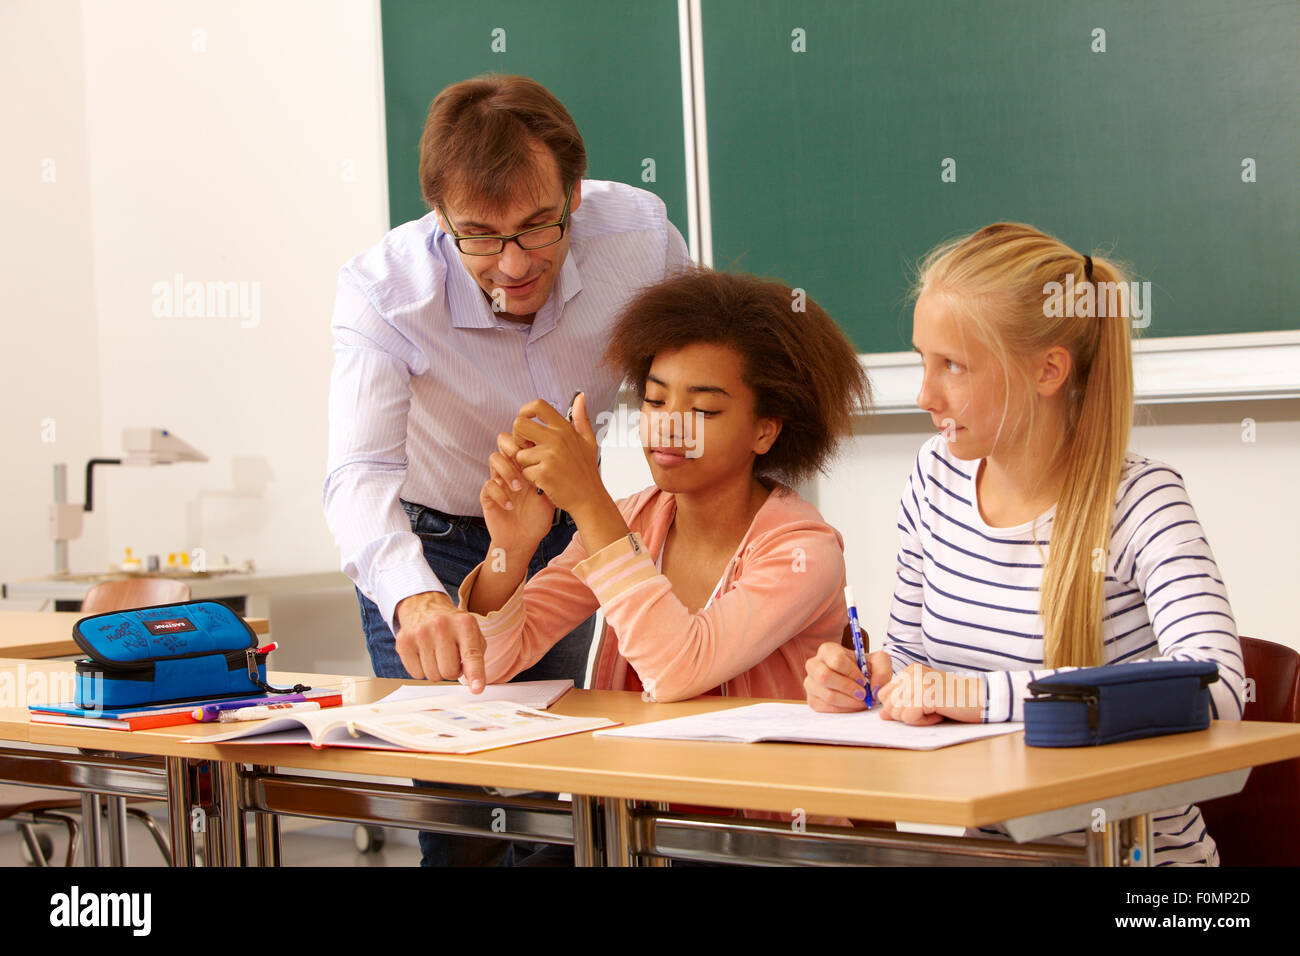 Teacher helps two schoolgirls in the lessons Stock Photo